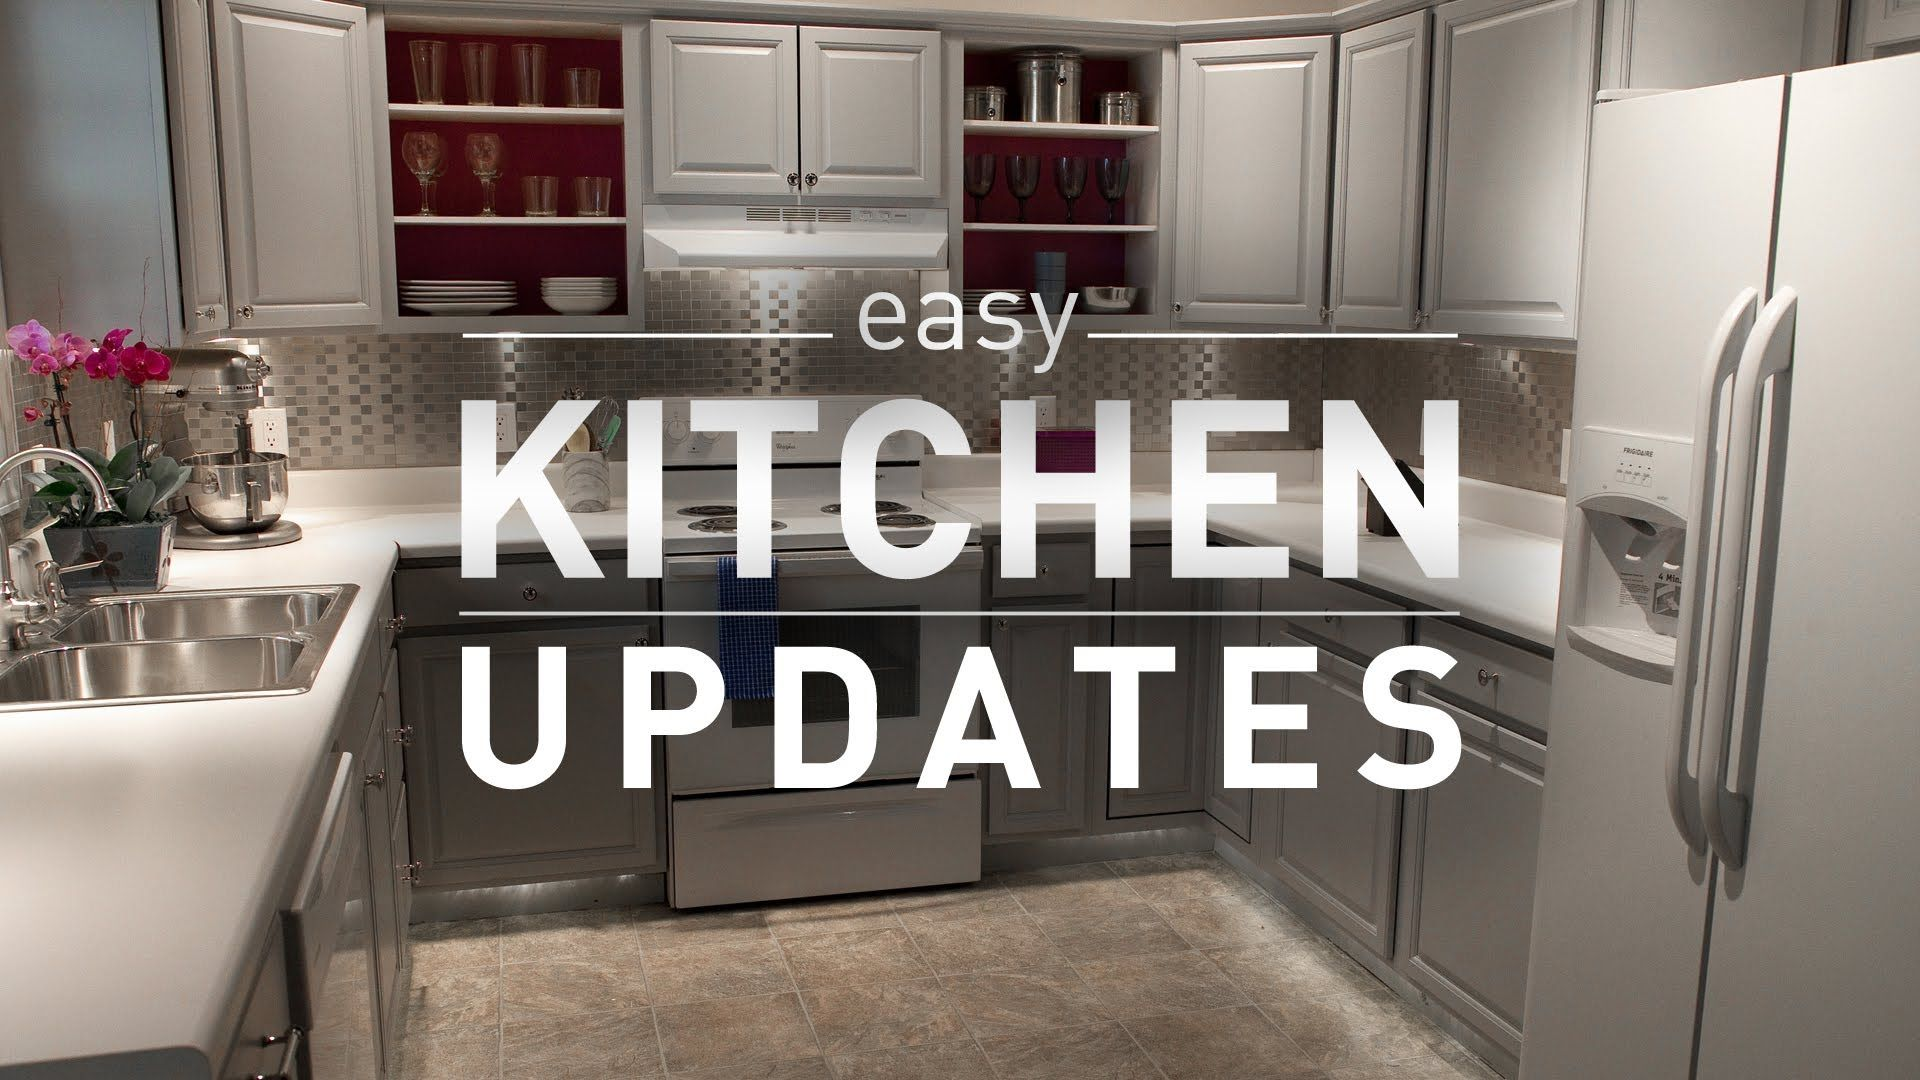 Kitchen Makeovers On A Budget Before And After budget-friendly kitchen makeover from lowe's | home improvements